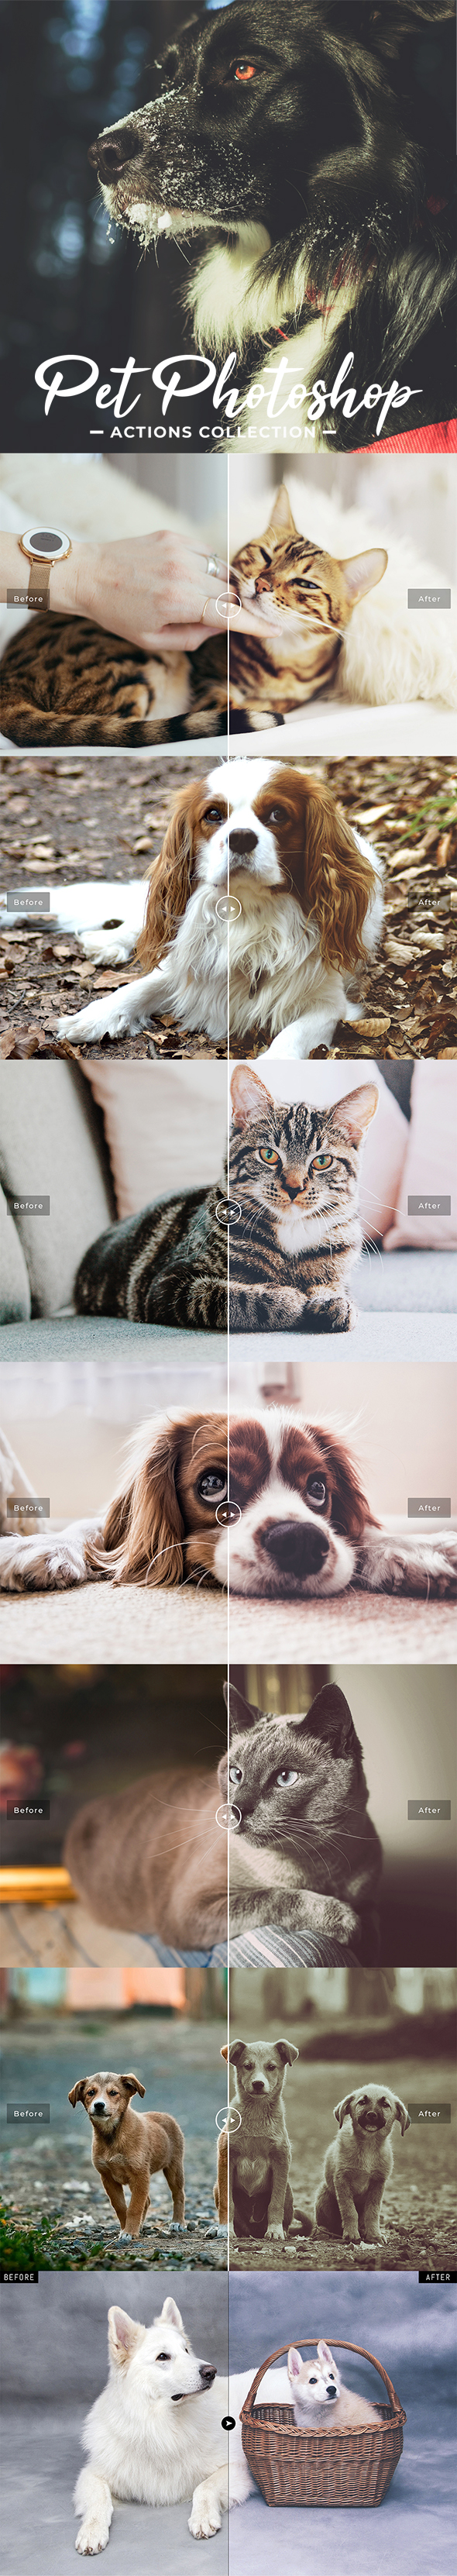 Pet Photoshop Actions Collection